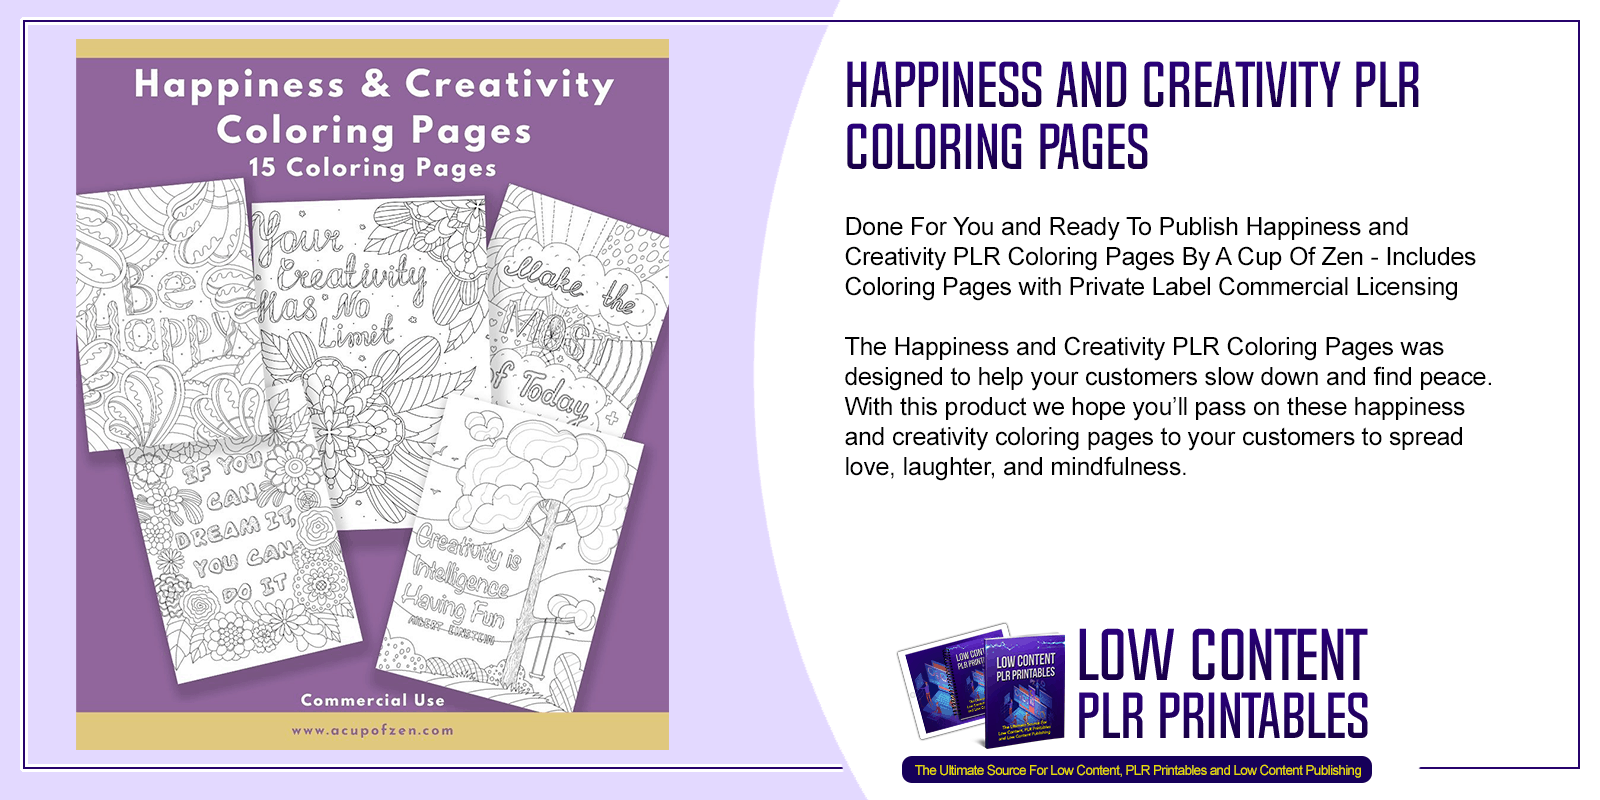 Happiness and Creativity PLR Coloring Pages